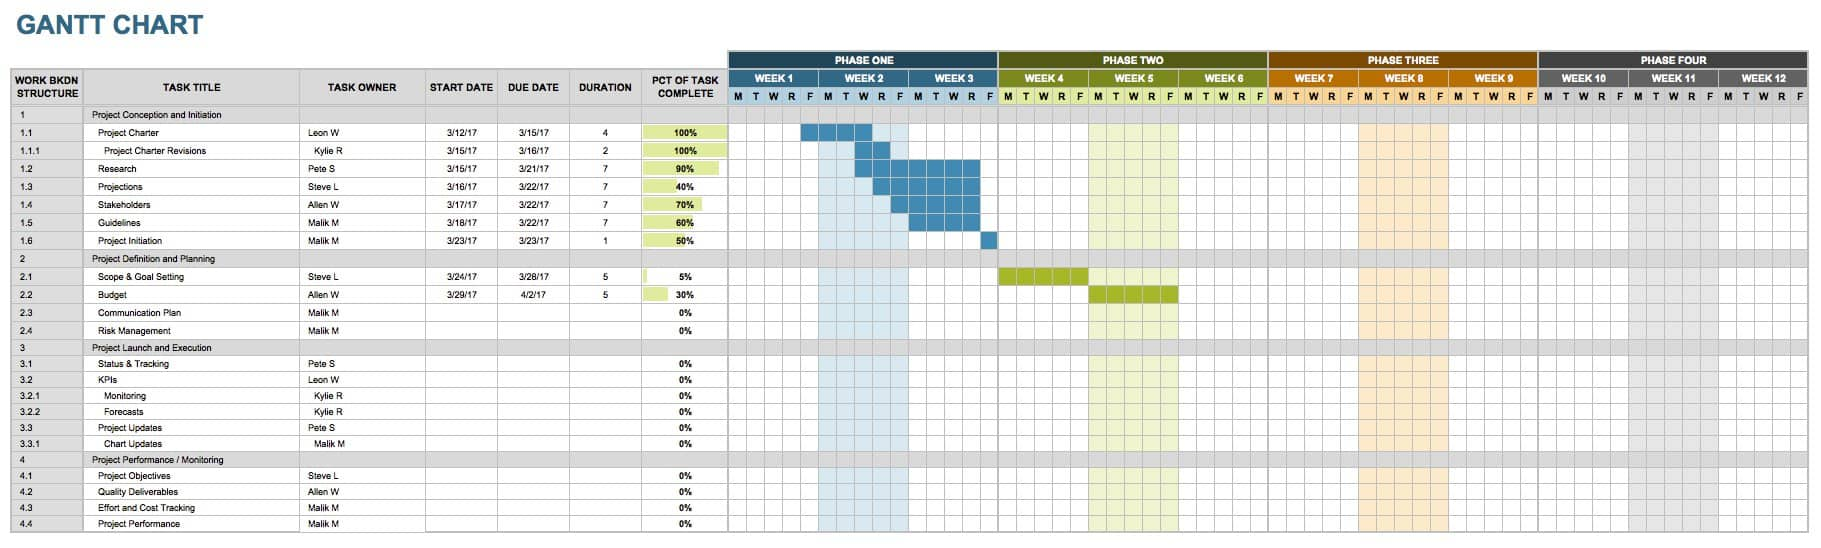 Free Marketing Timeline Tips And Templates Smartsheet - Timeline chart template